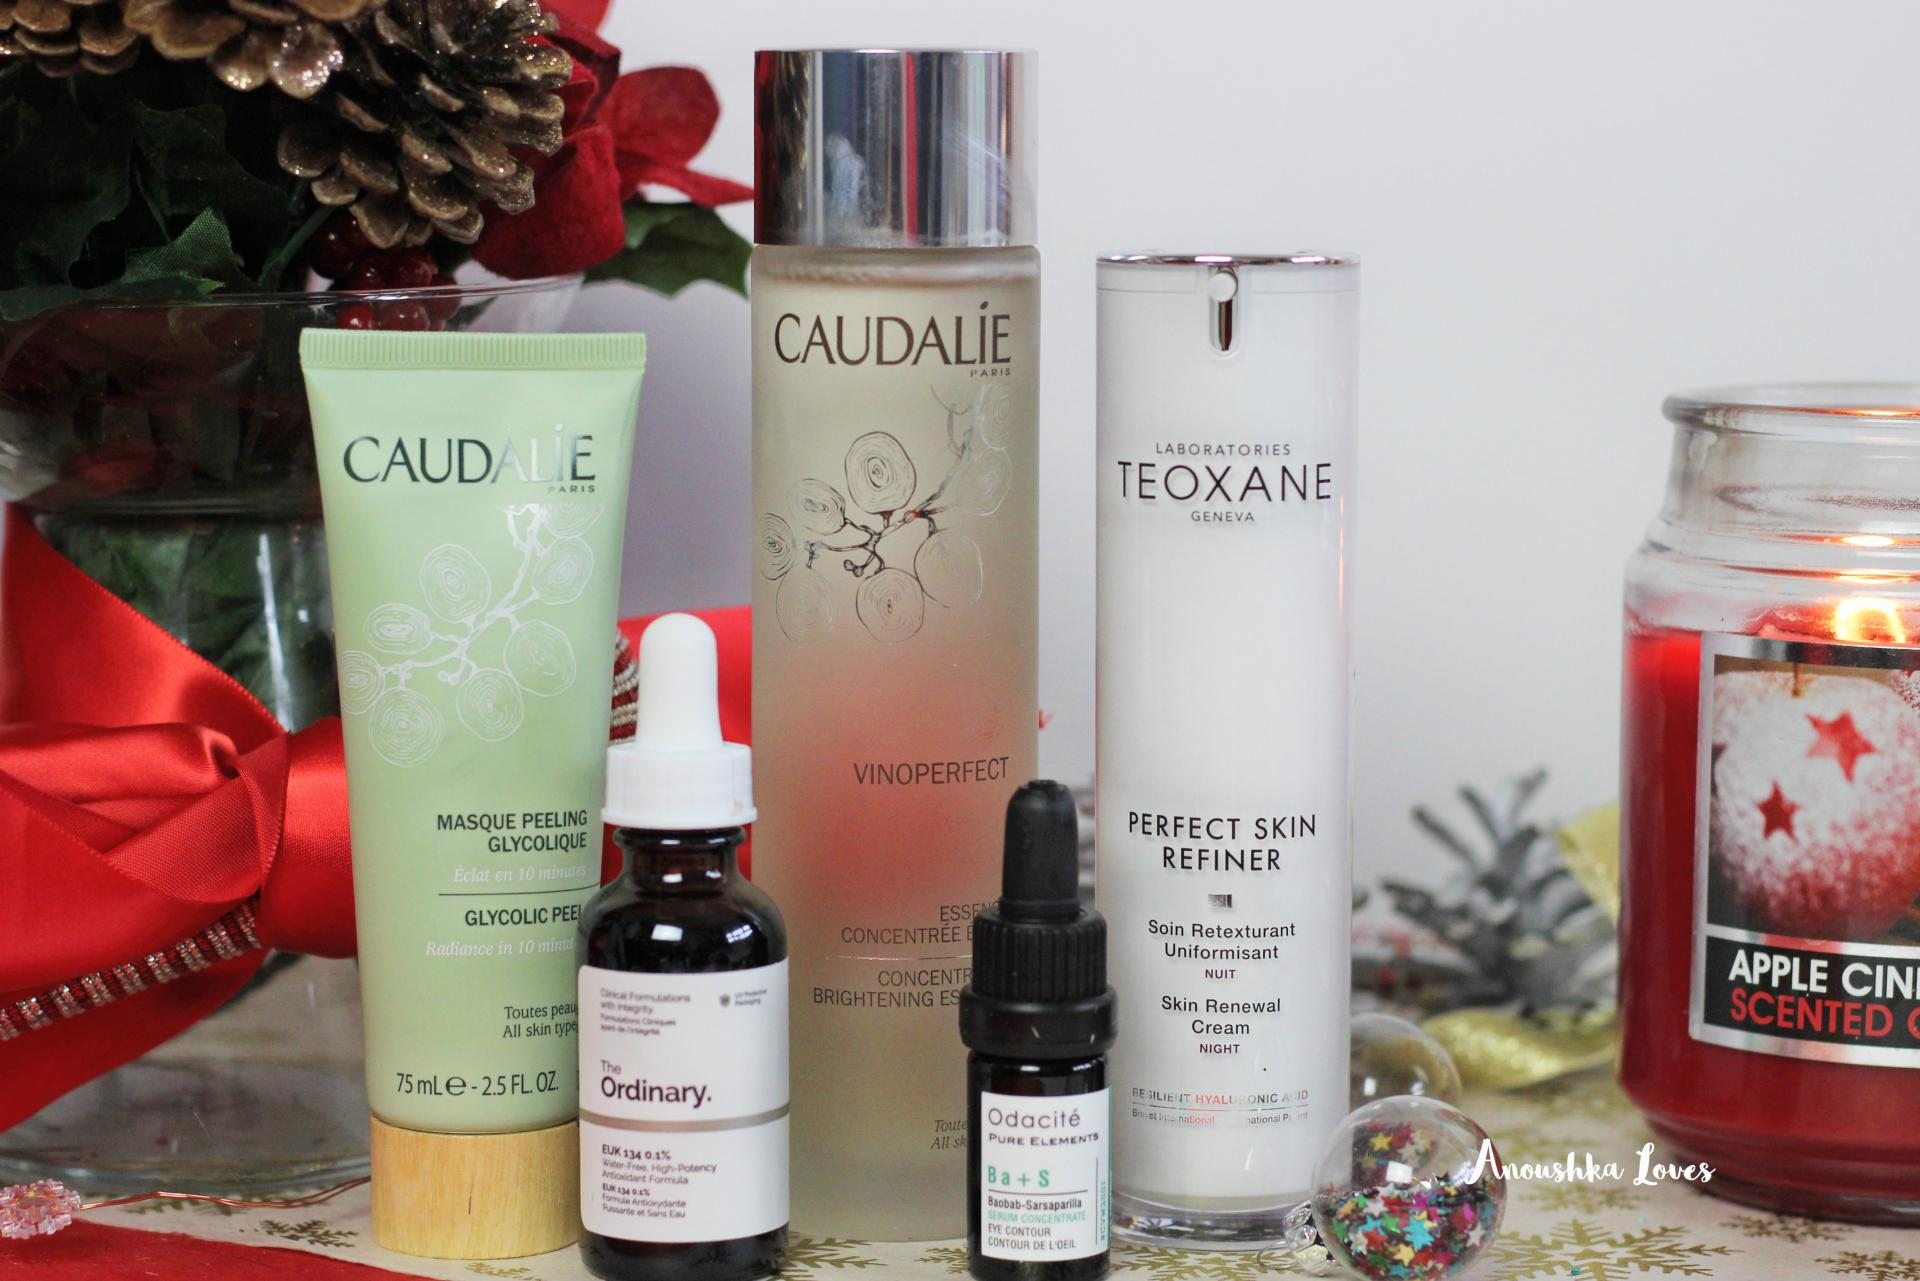 The Best of Skincare Caudalie Odacite The Ordinary Teoxane